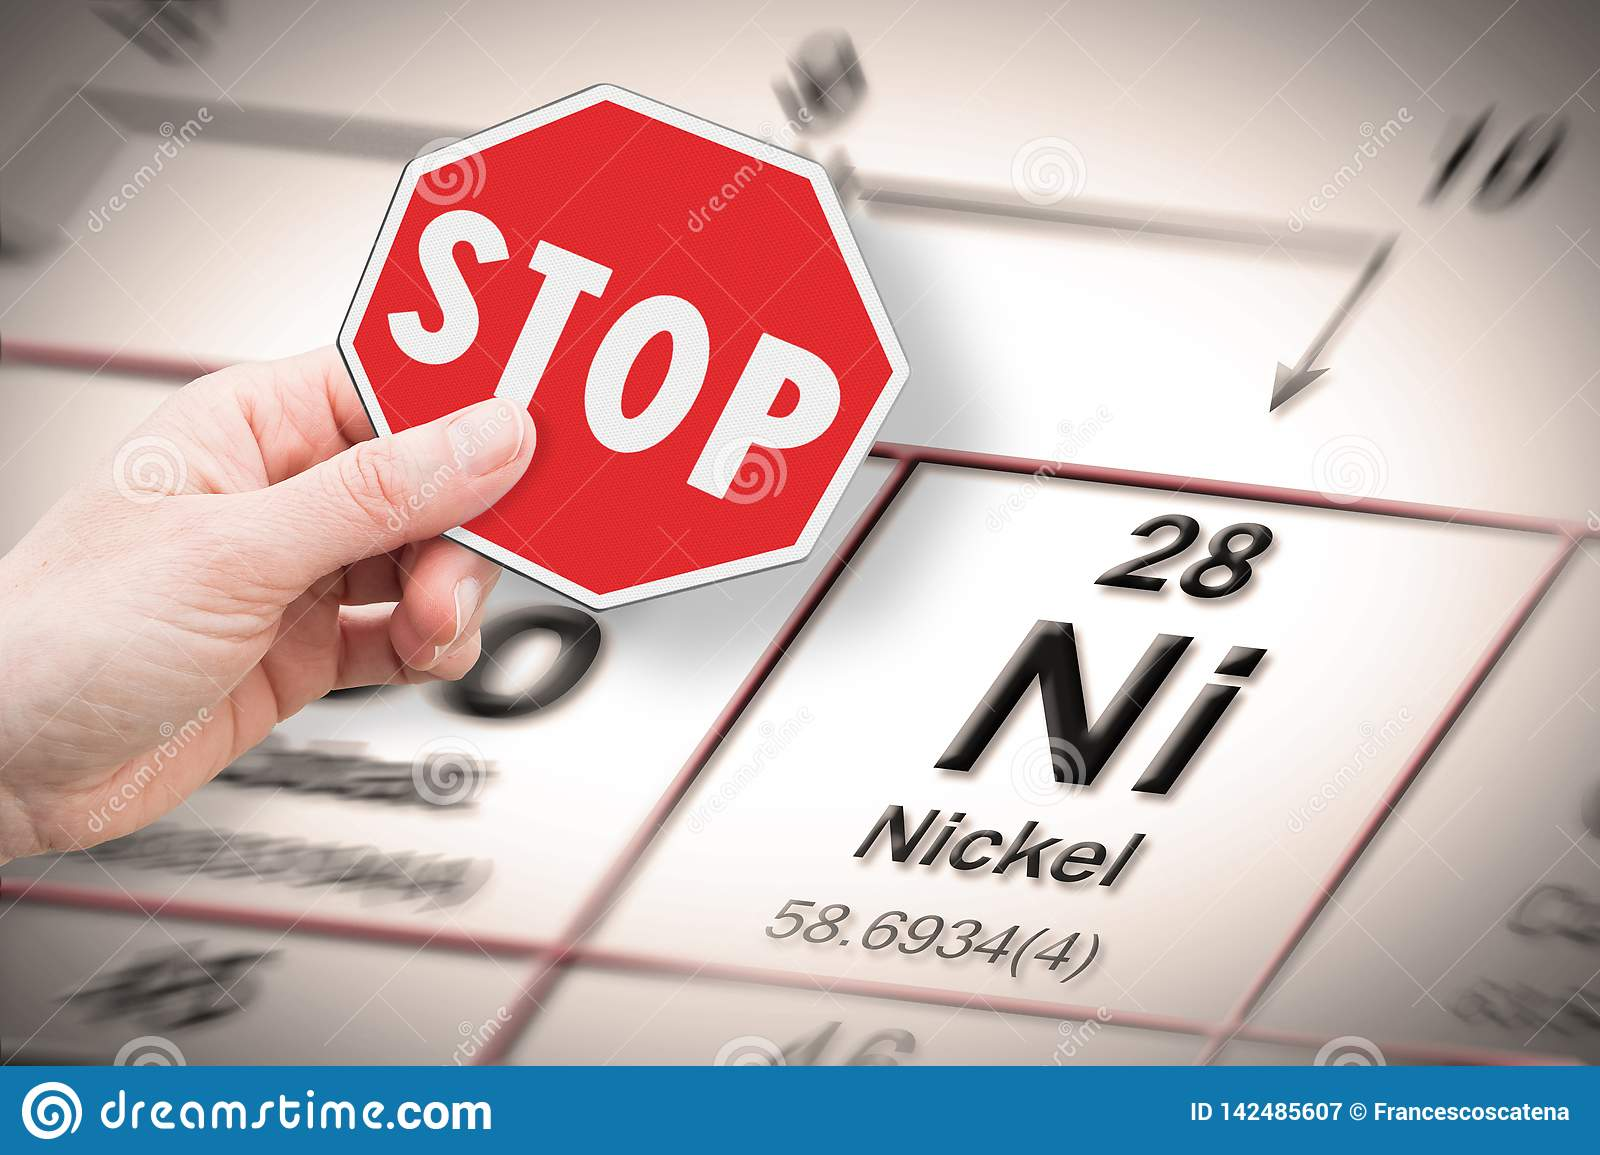 Stop Heavy Metals - Concept Image With Hand Holding A Stop Sign Against A Nickel Chemical Element With The Mendeleev Periodic Stock Image - Image ...